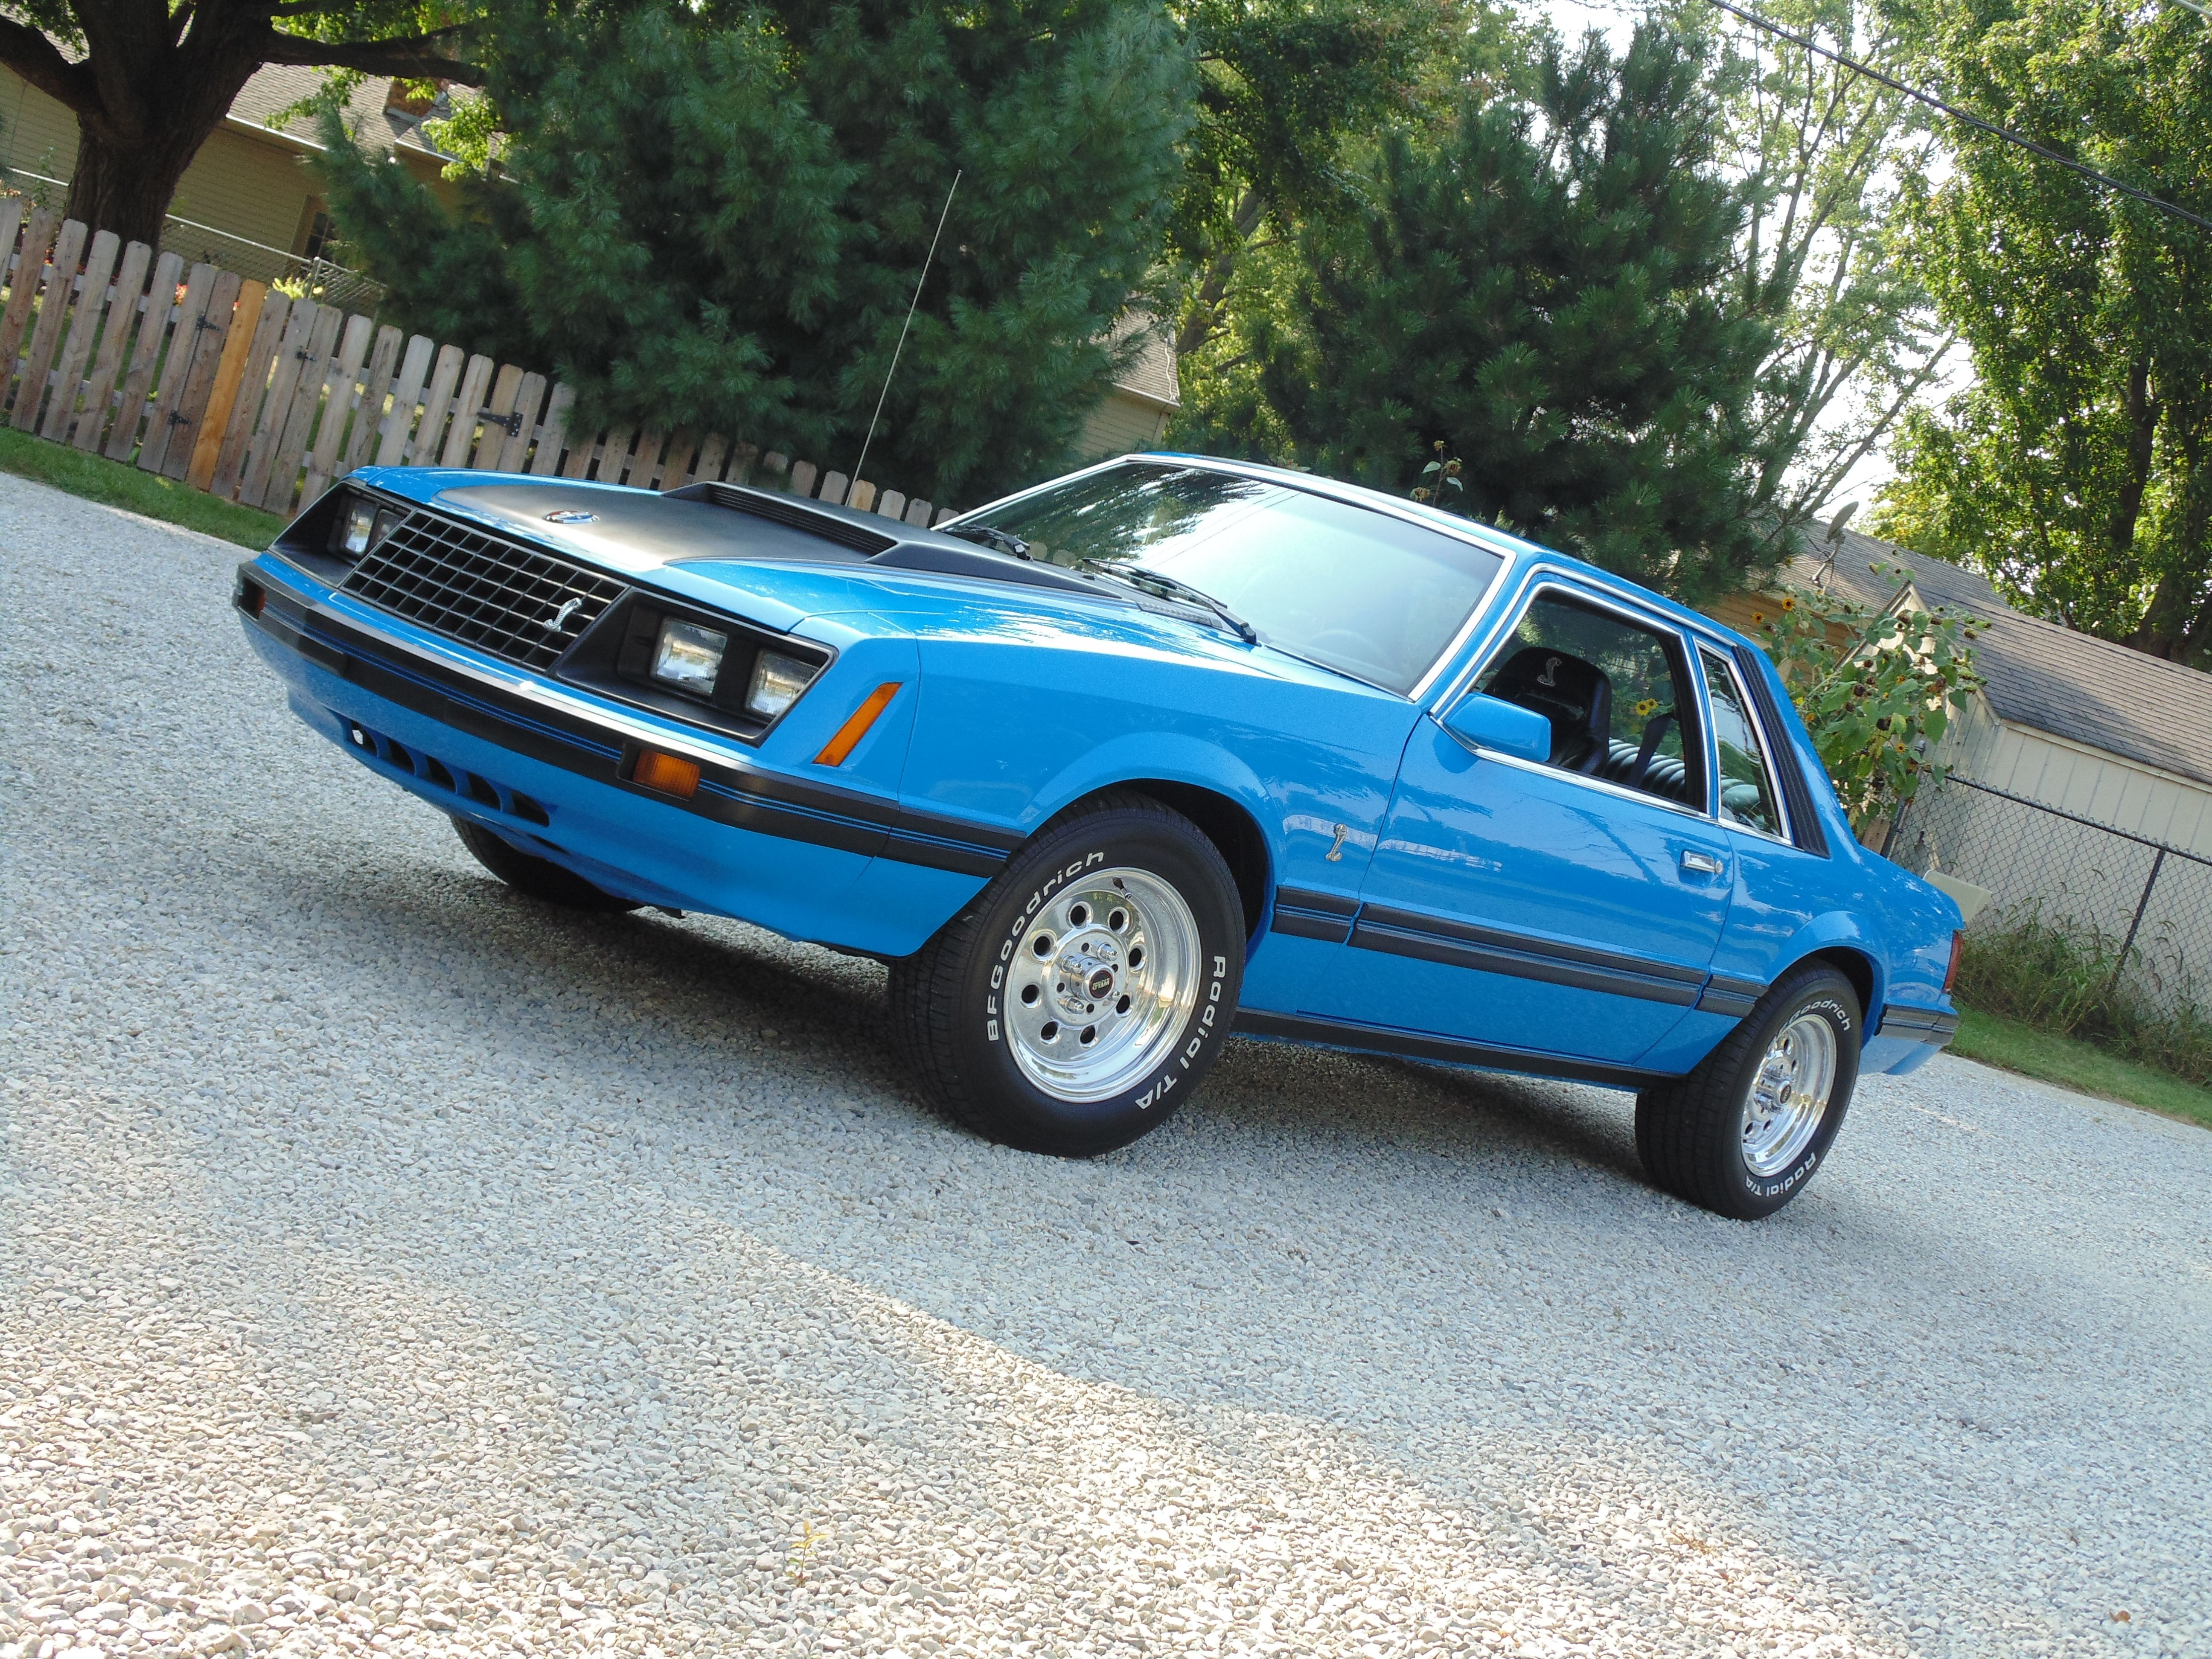 79 mustang coupe 1979 mustang fox mustang ford probe mustangs muscle cars